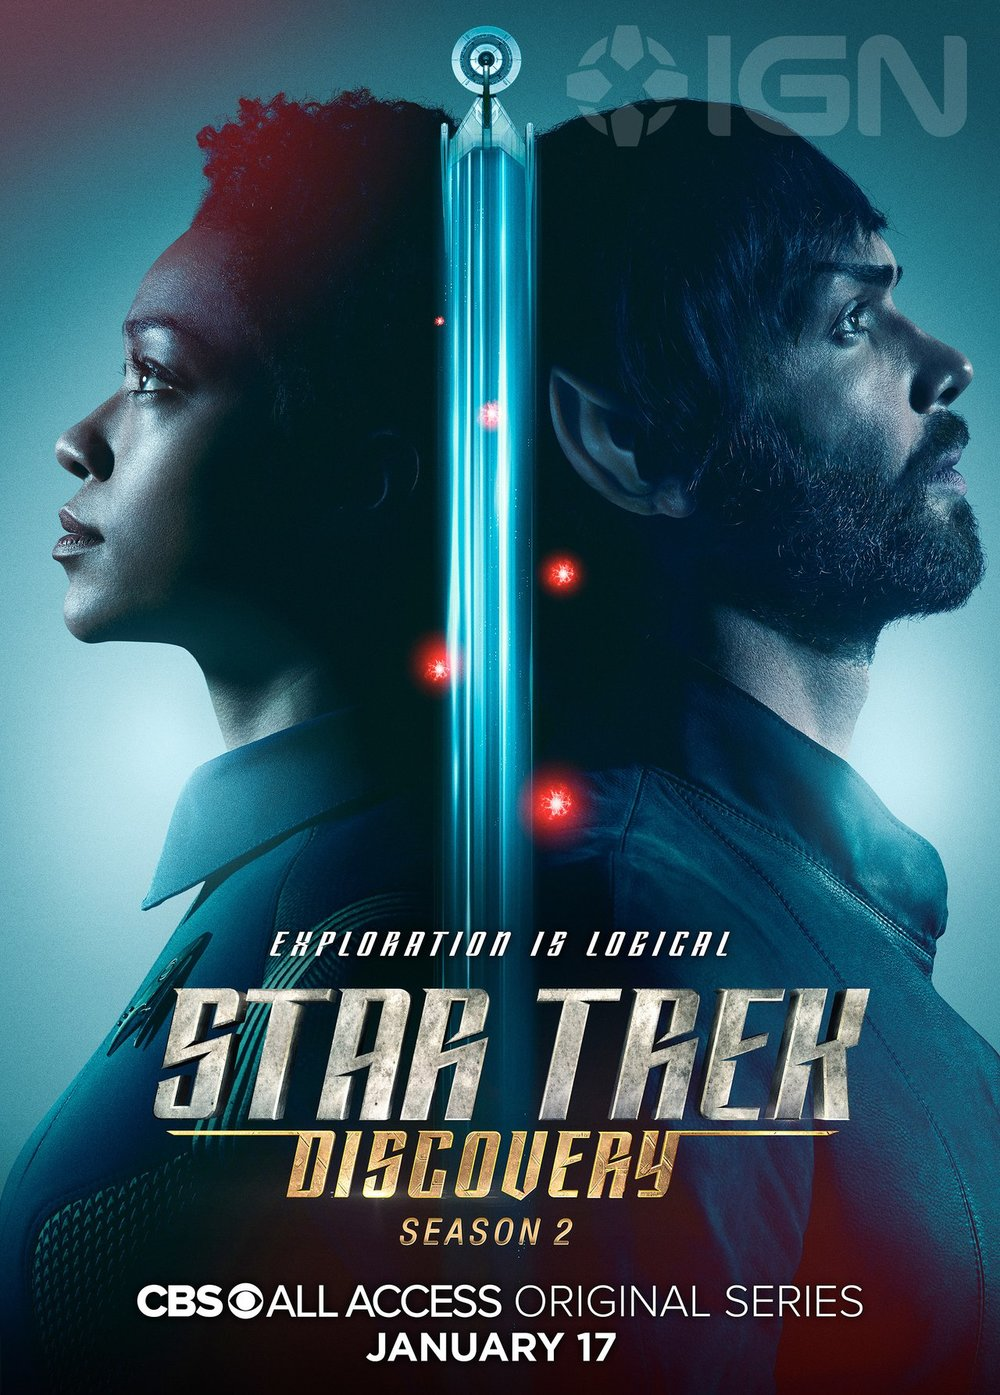 star-trek-discovery-featurette-focuses-on-captain-pike-and-new-character-posters2